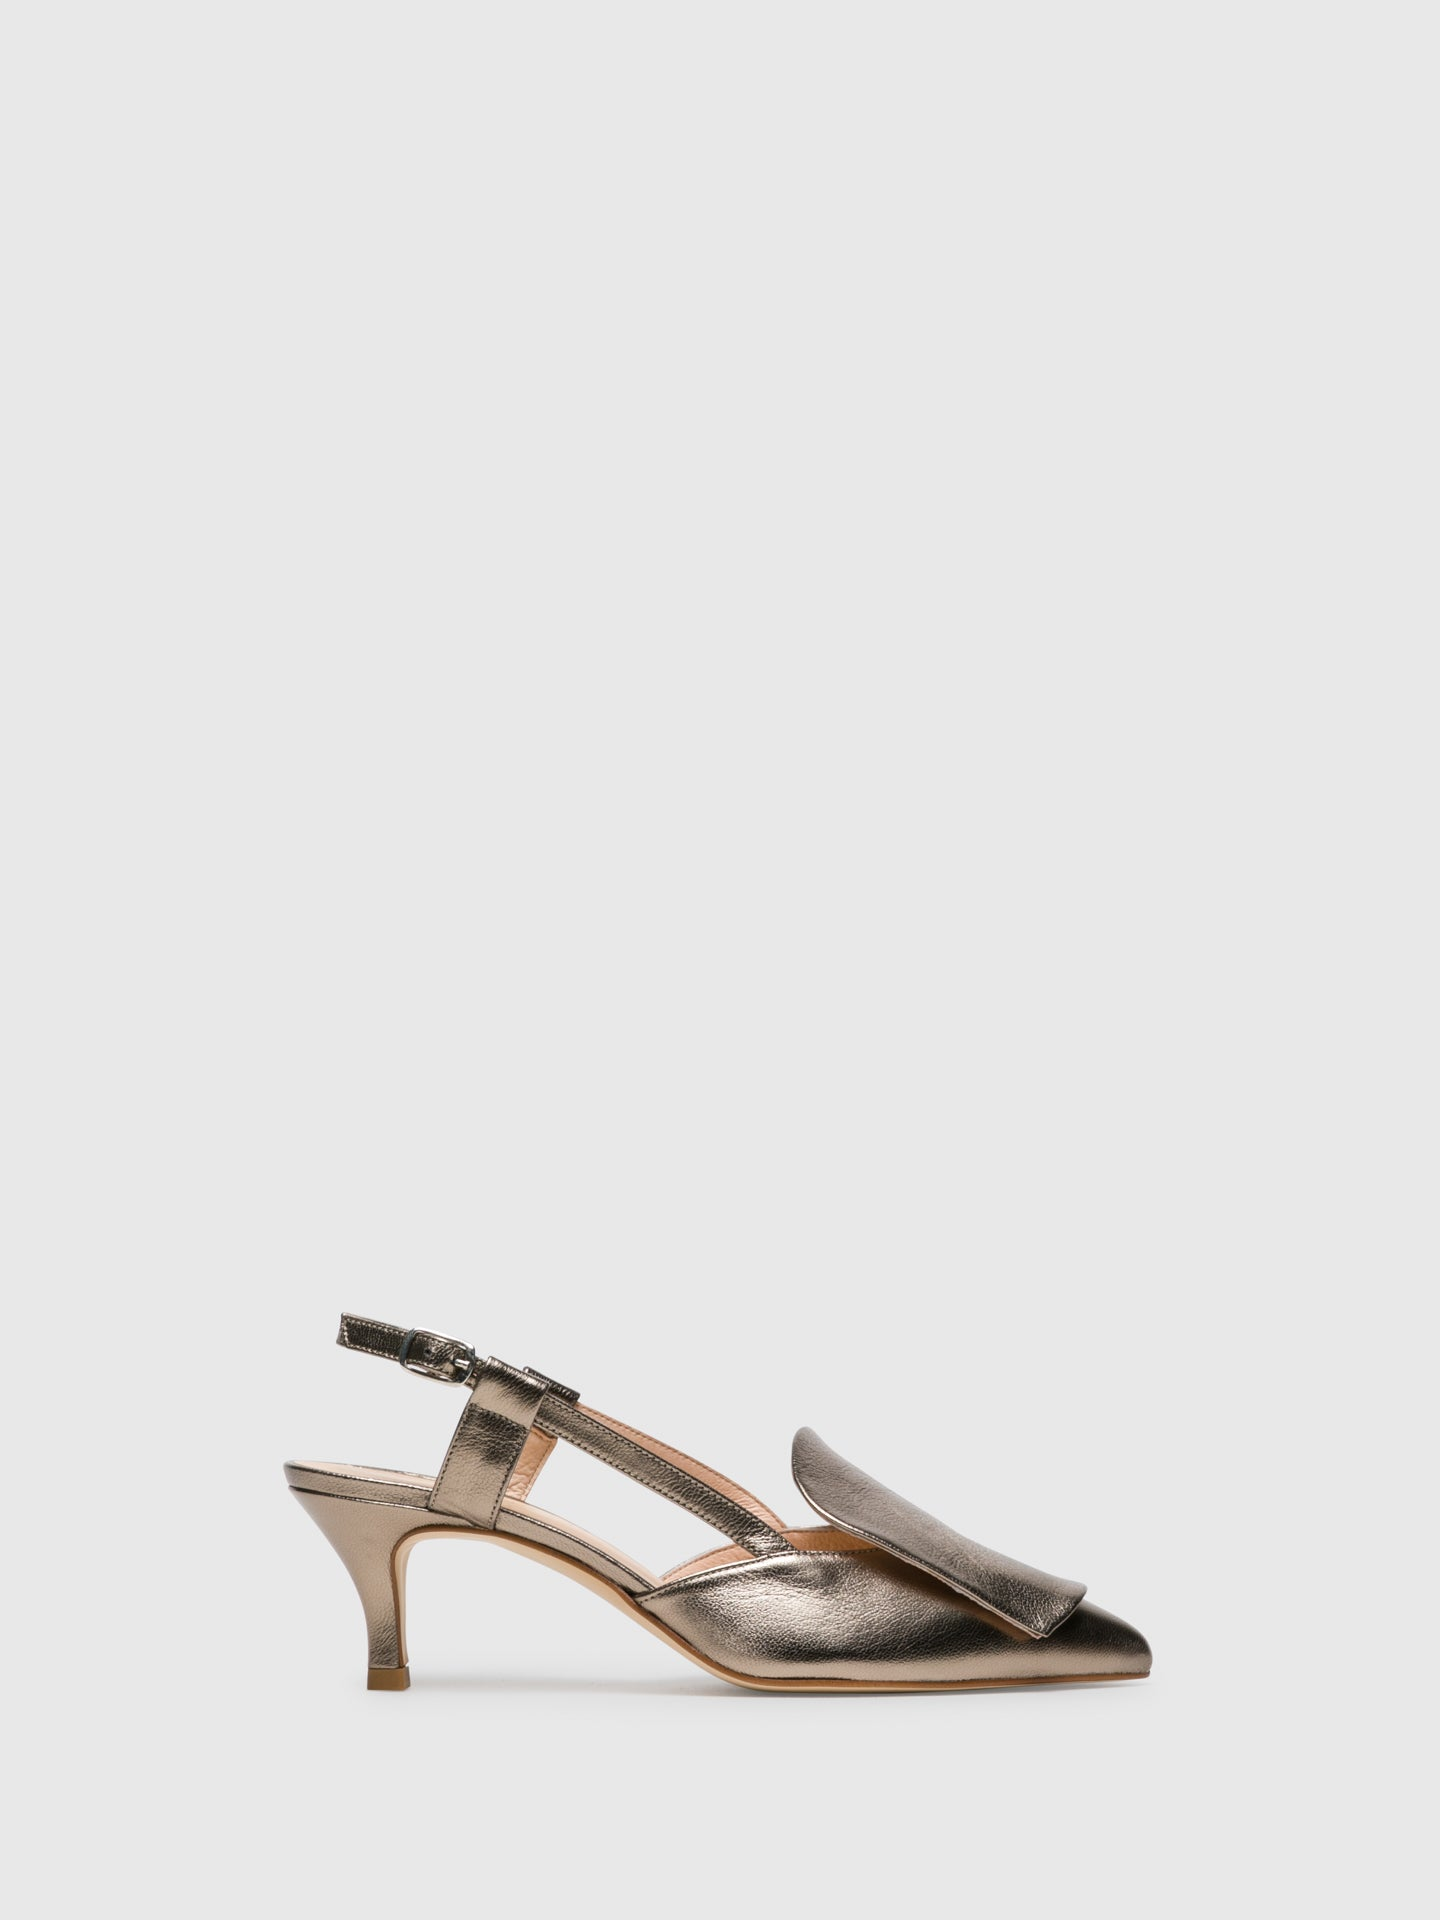 Sofia Costa Gold Monk Sandals